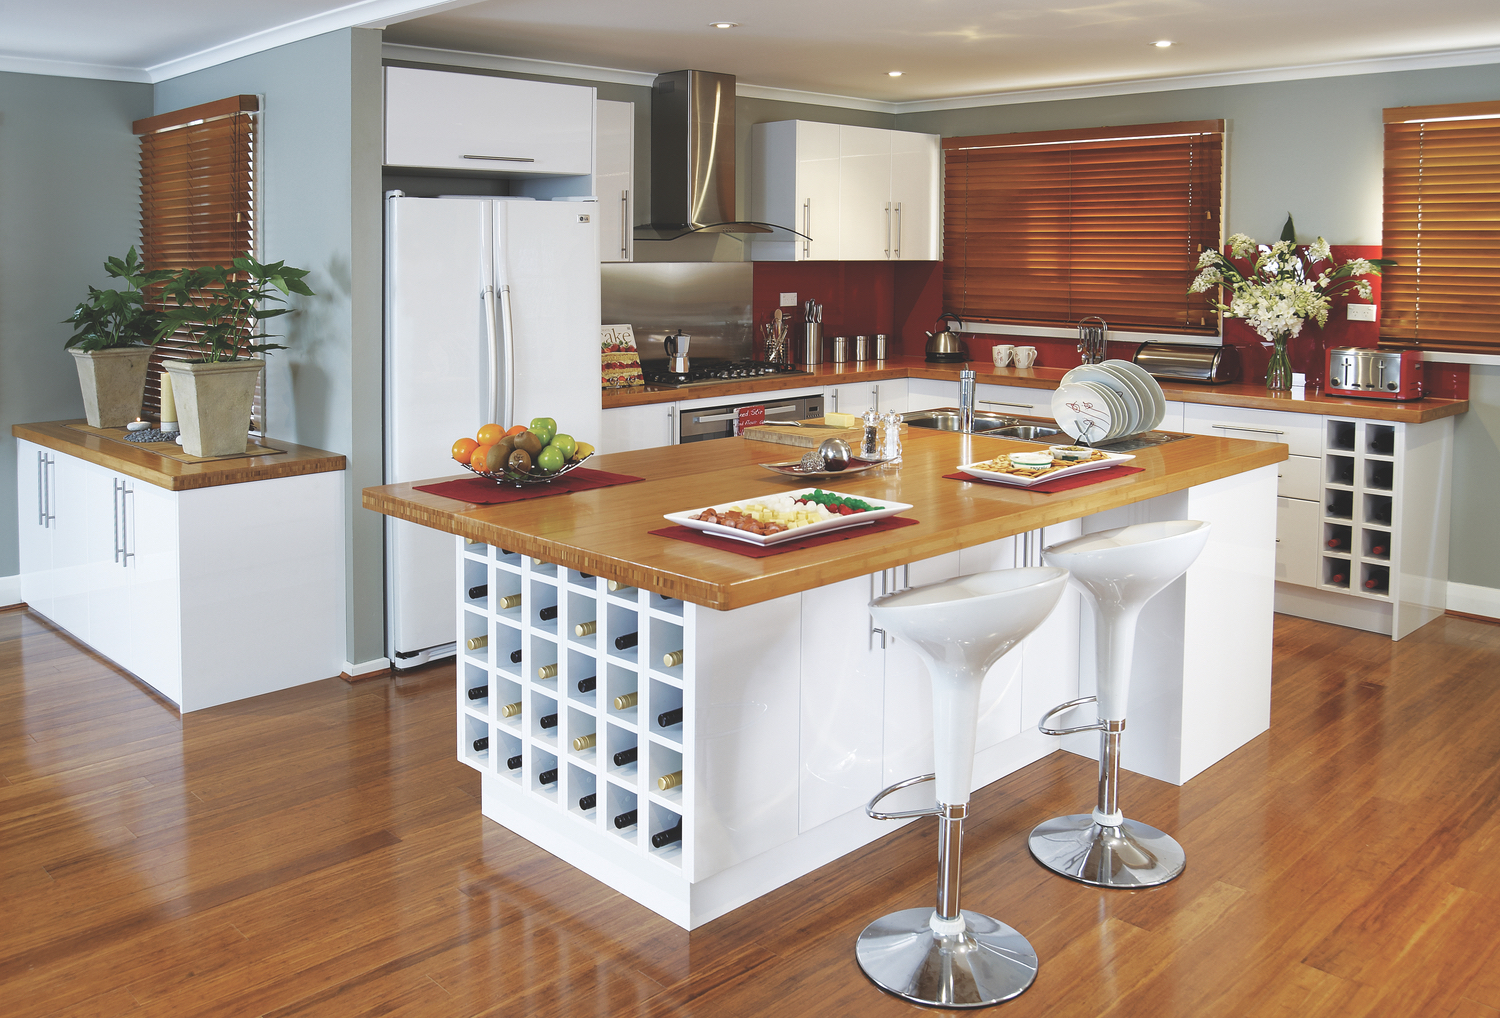 modular kitchen wall cabinets best floors the practical entertainer - ideas and inspiration ...